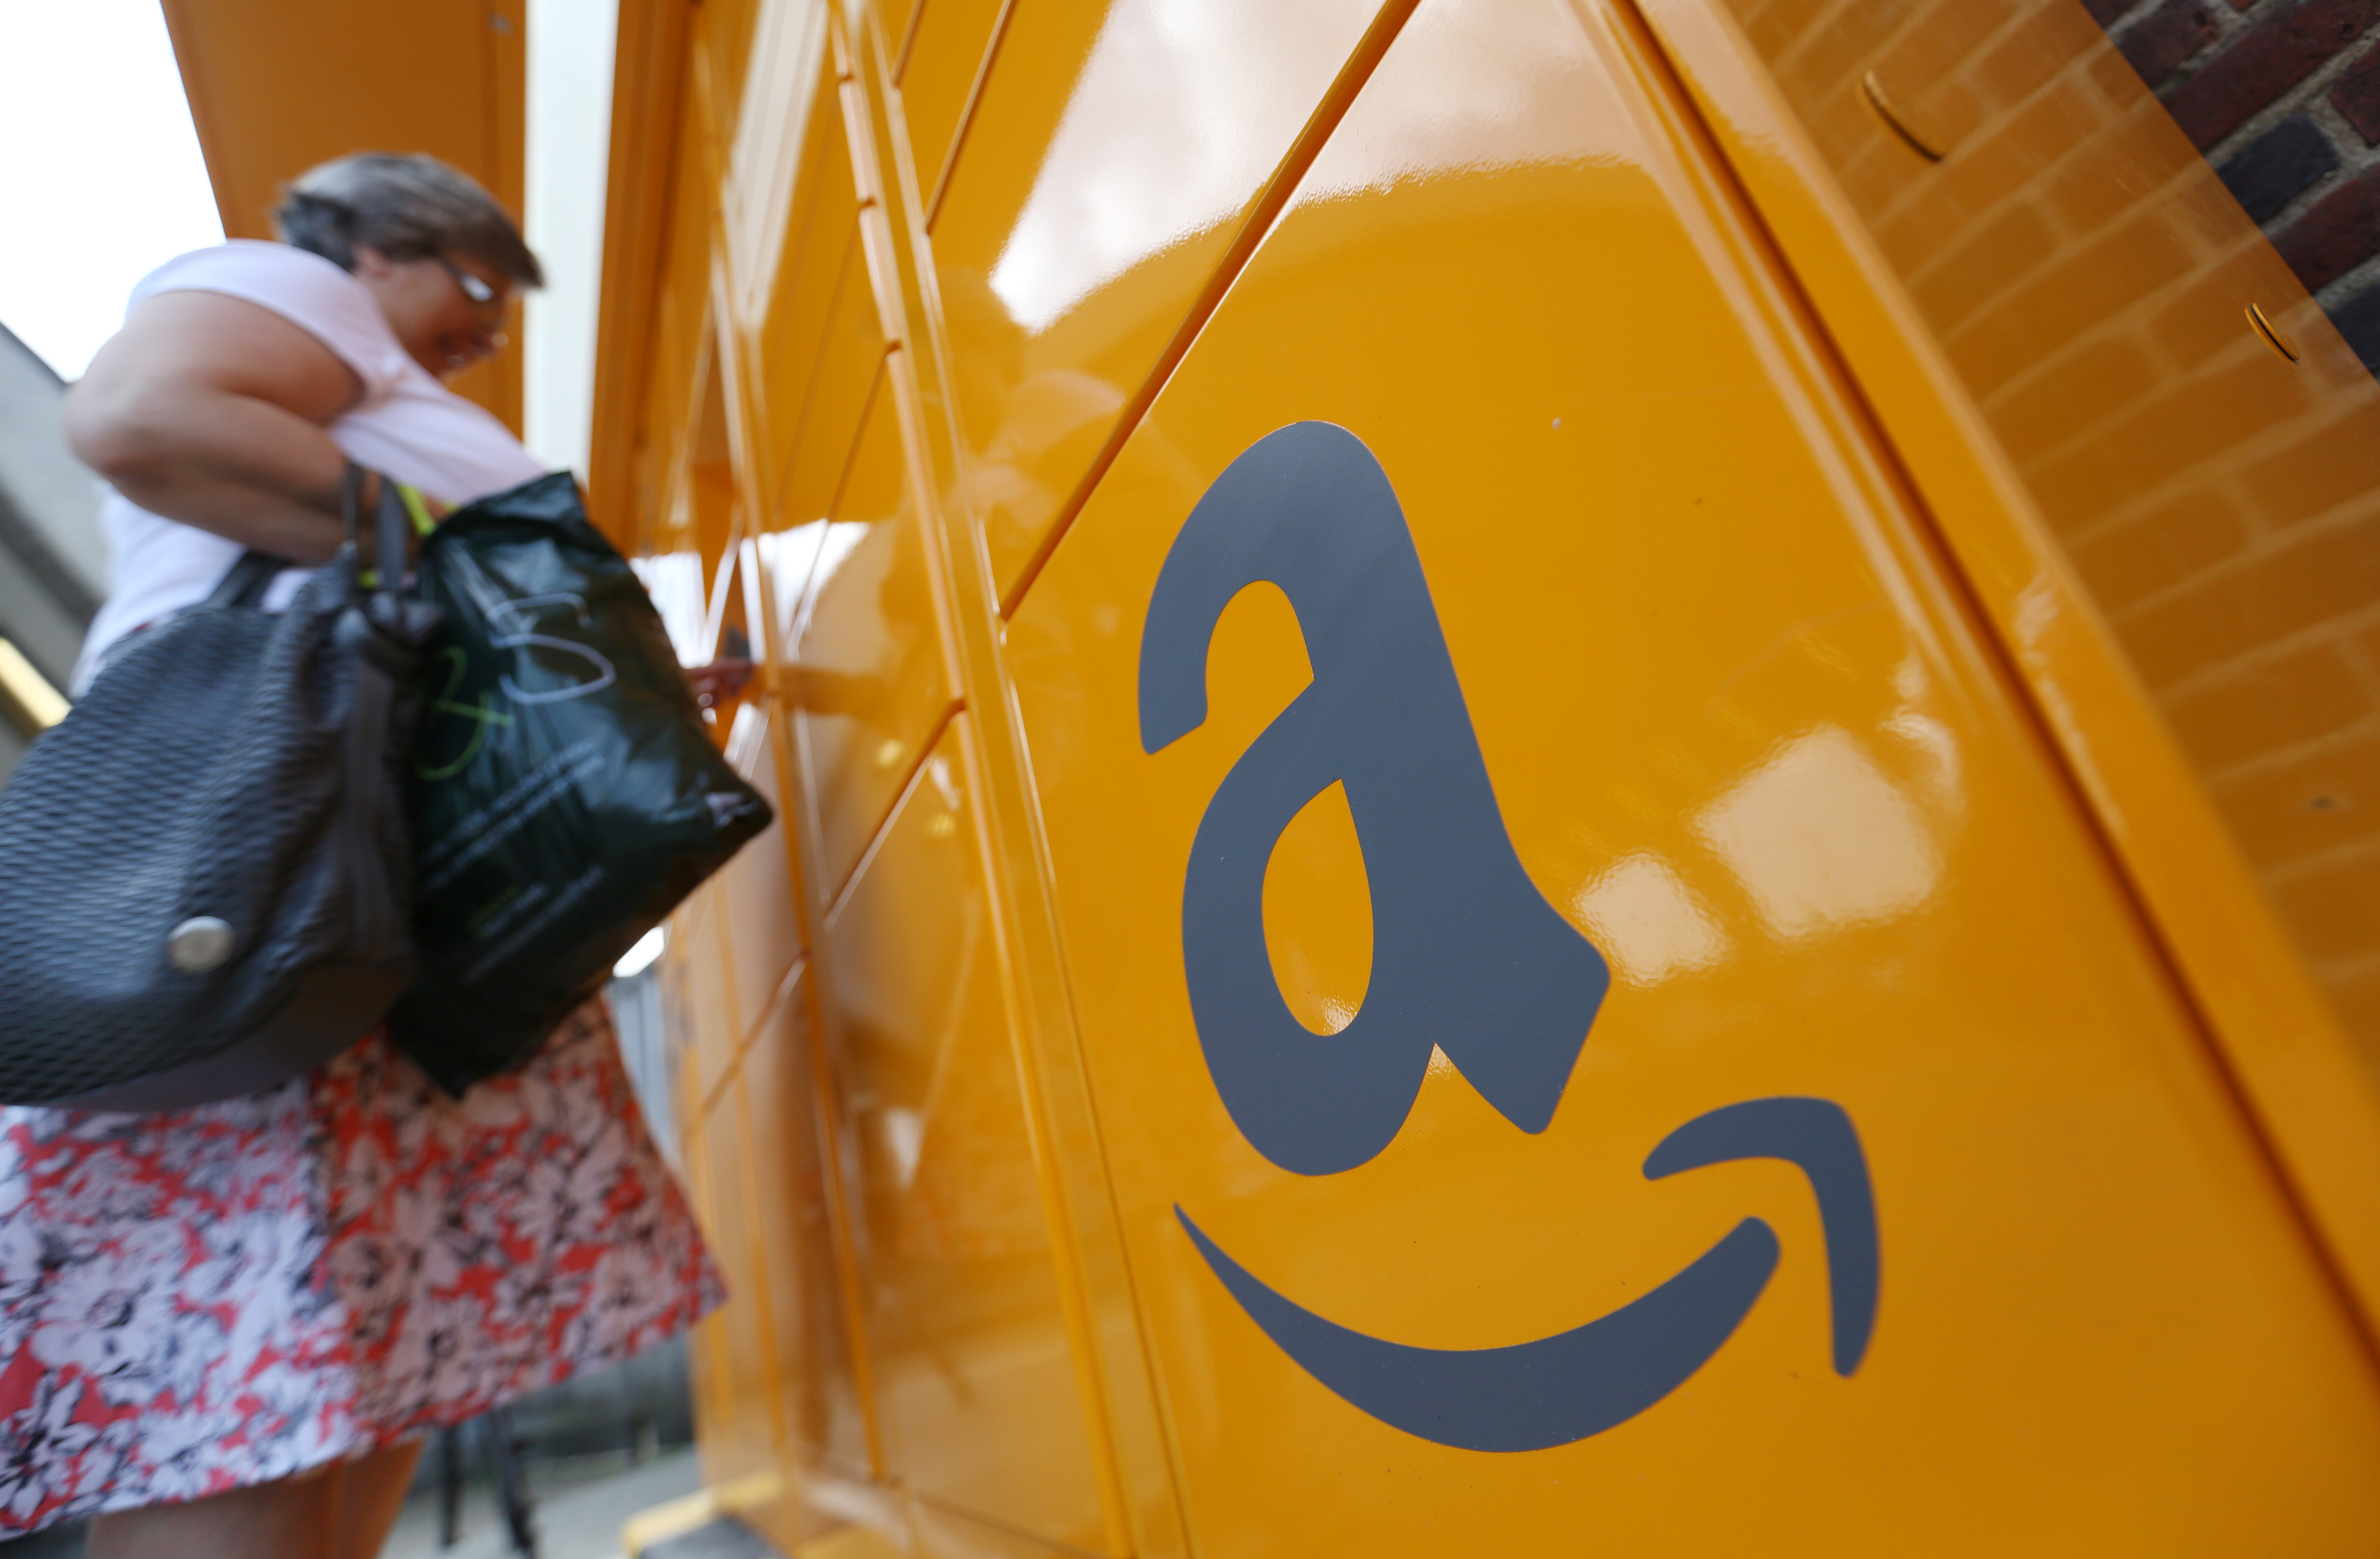 Customers Collect Online Orders From An Amazon.com Inc. Locker